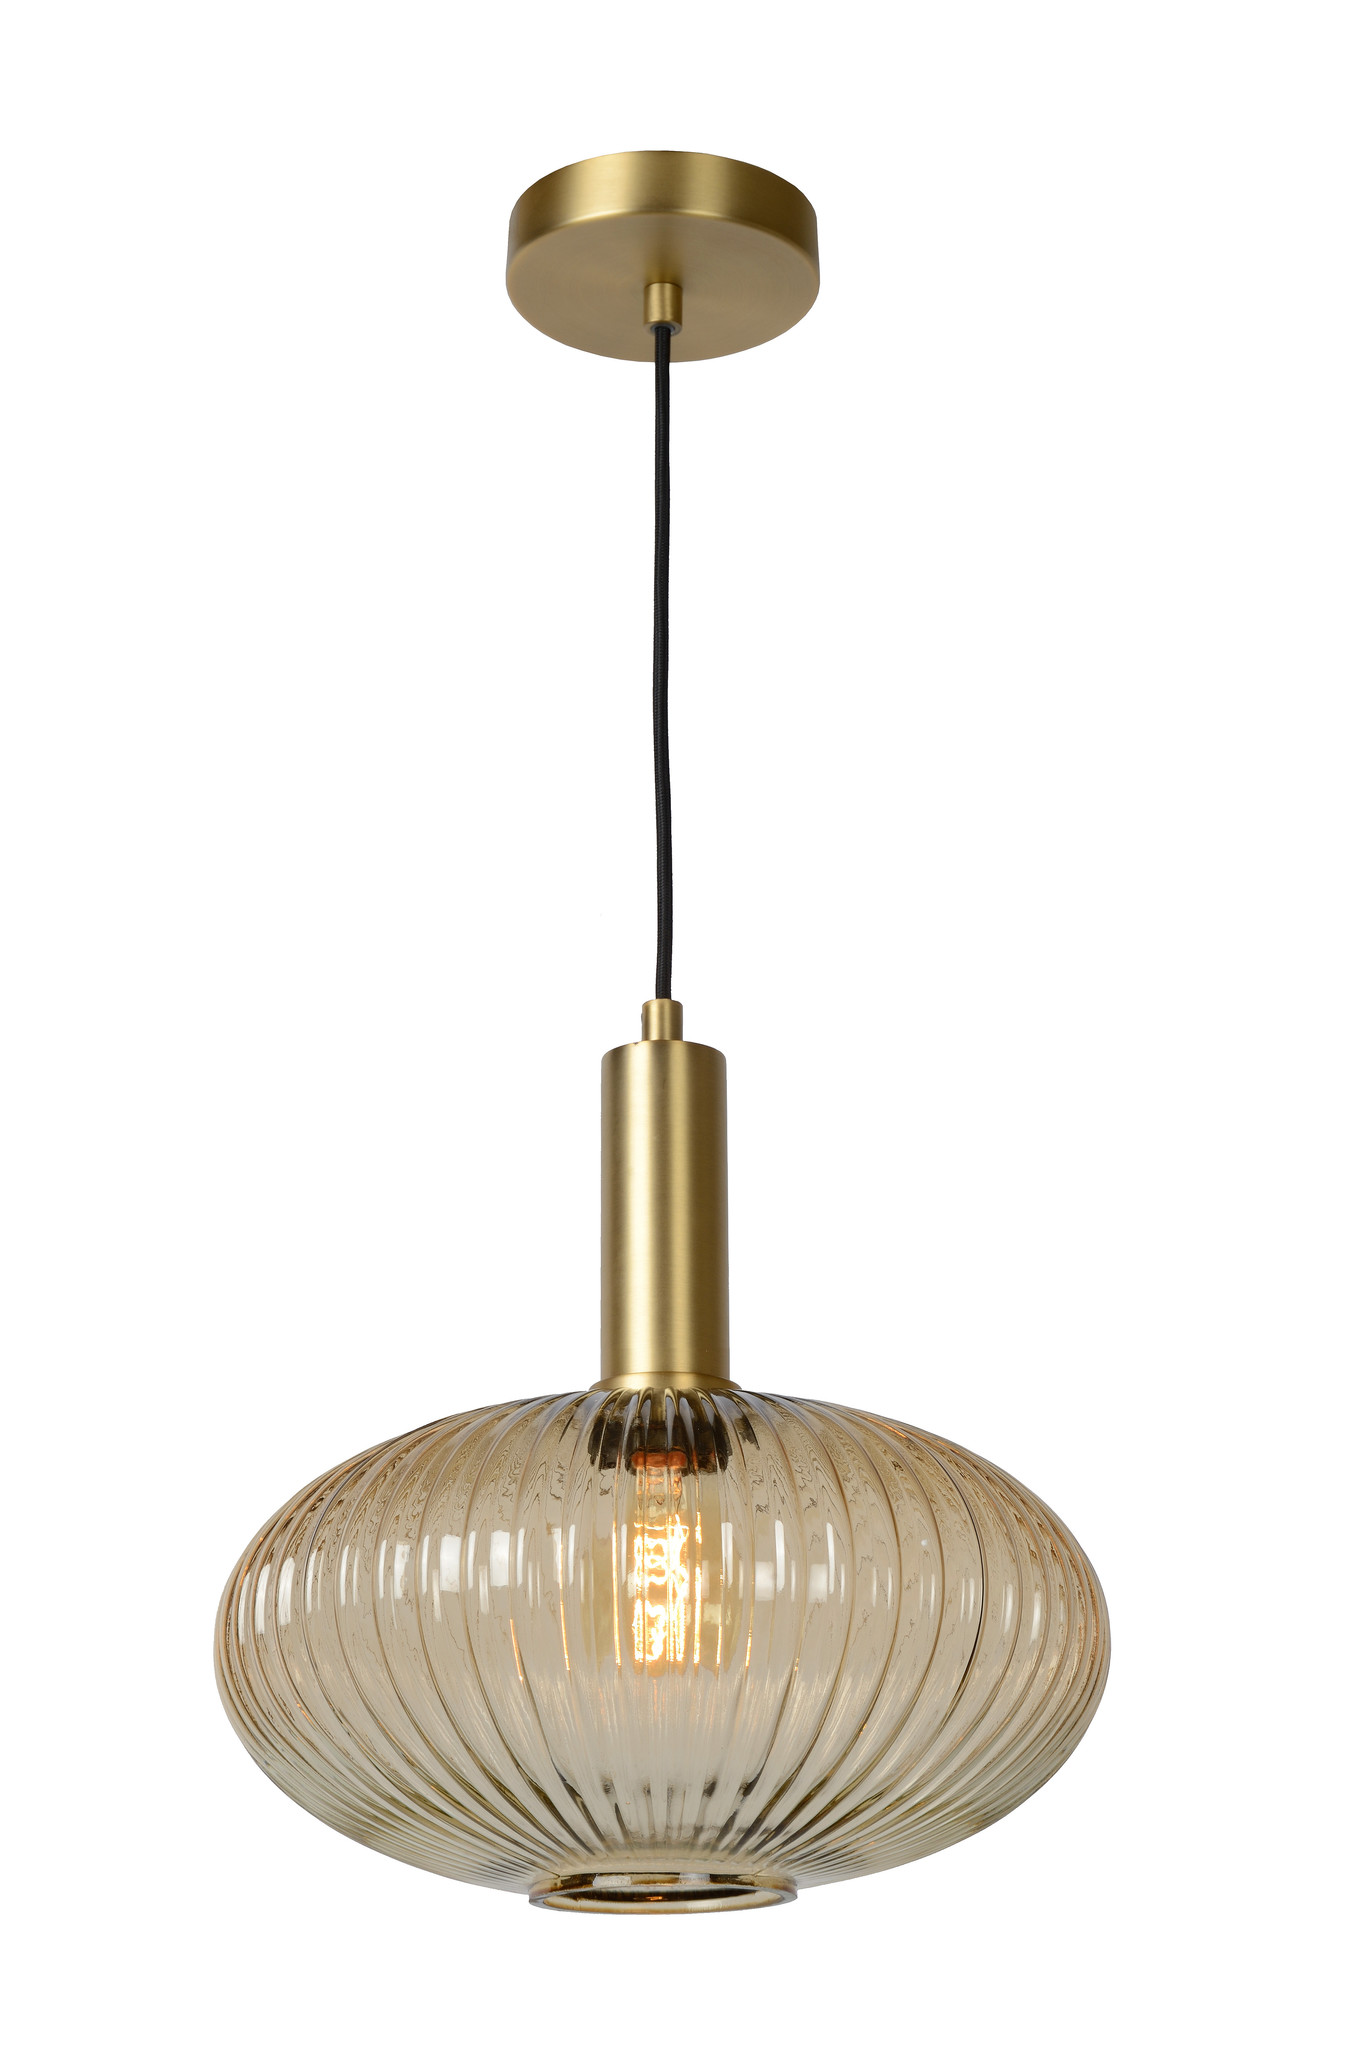 Lucide MALOTO Hanglamp-Amber-Ø30-1xE27-40W-Glas